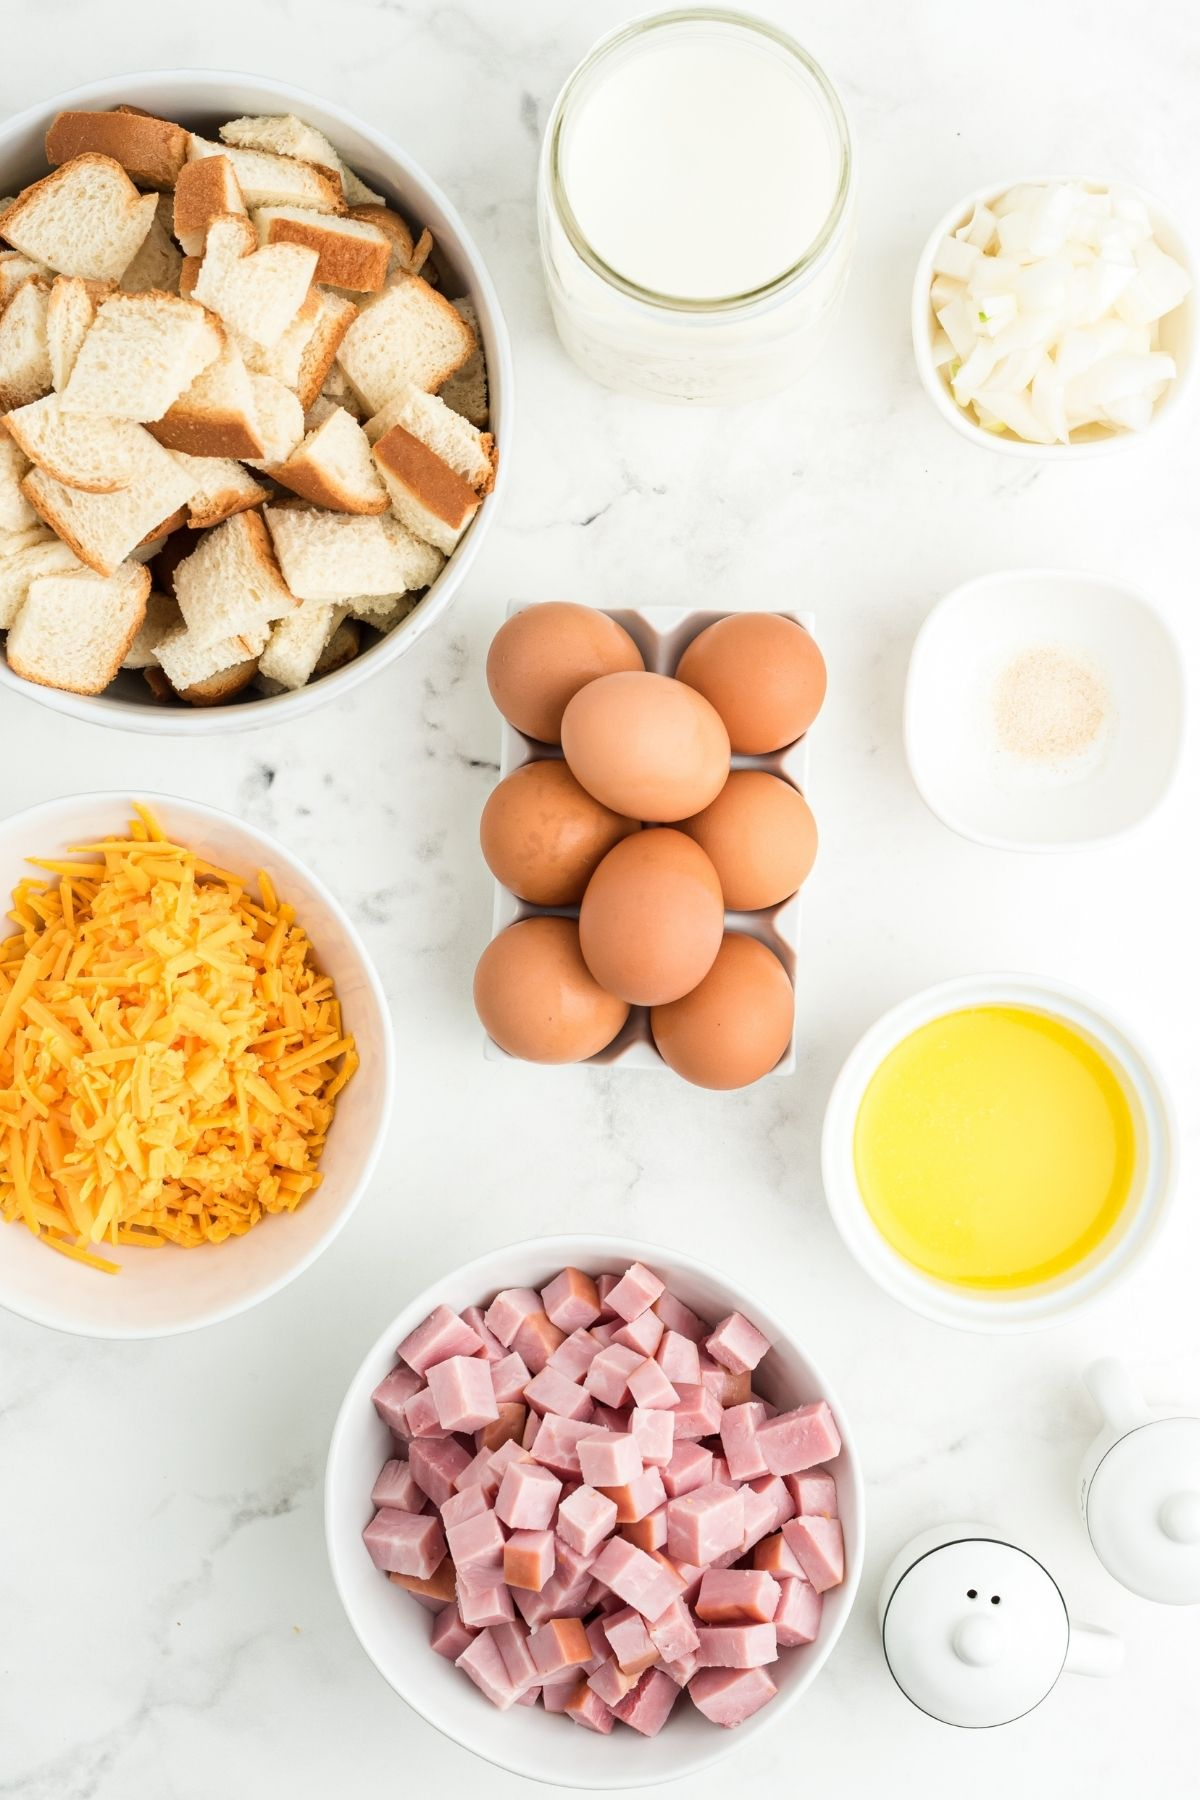 ingredients on white counter: cubed bread, milk, chopped onions, seasoning, melted butter, 8 brown eggs, diced ham, shredded cheddar cheese